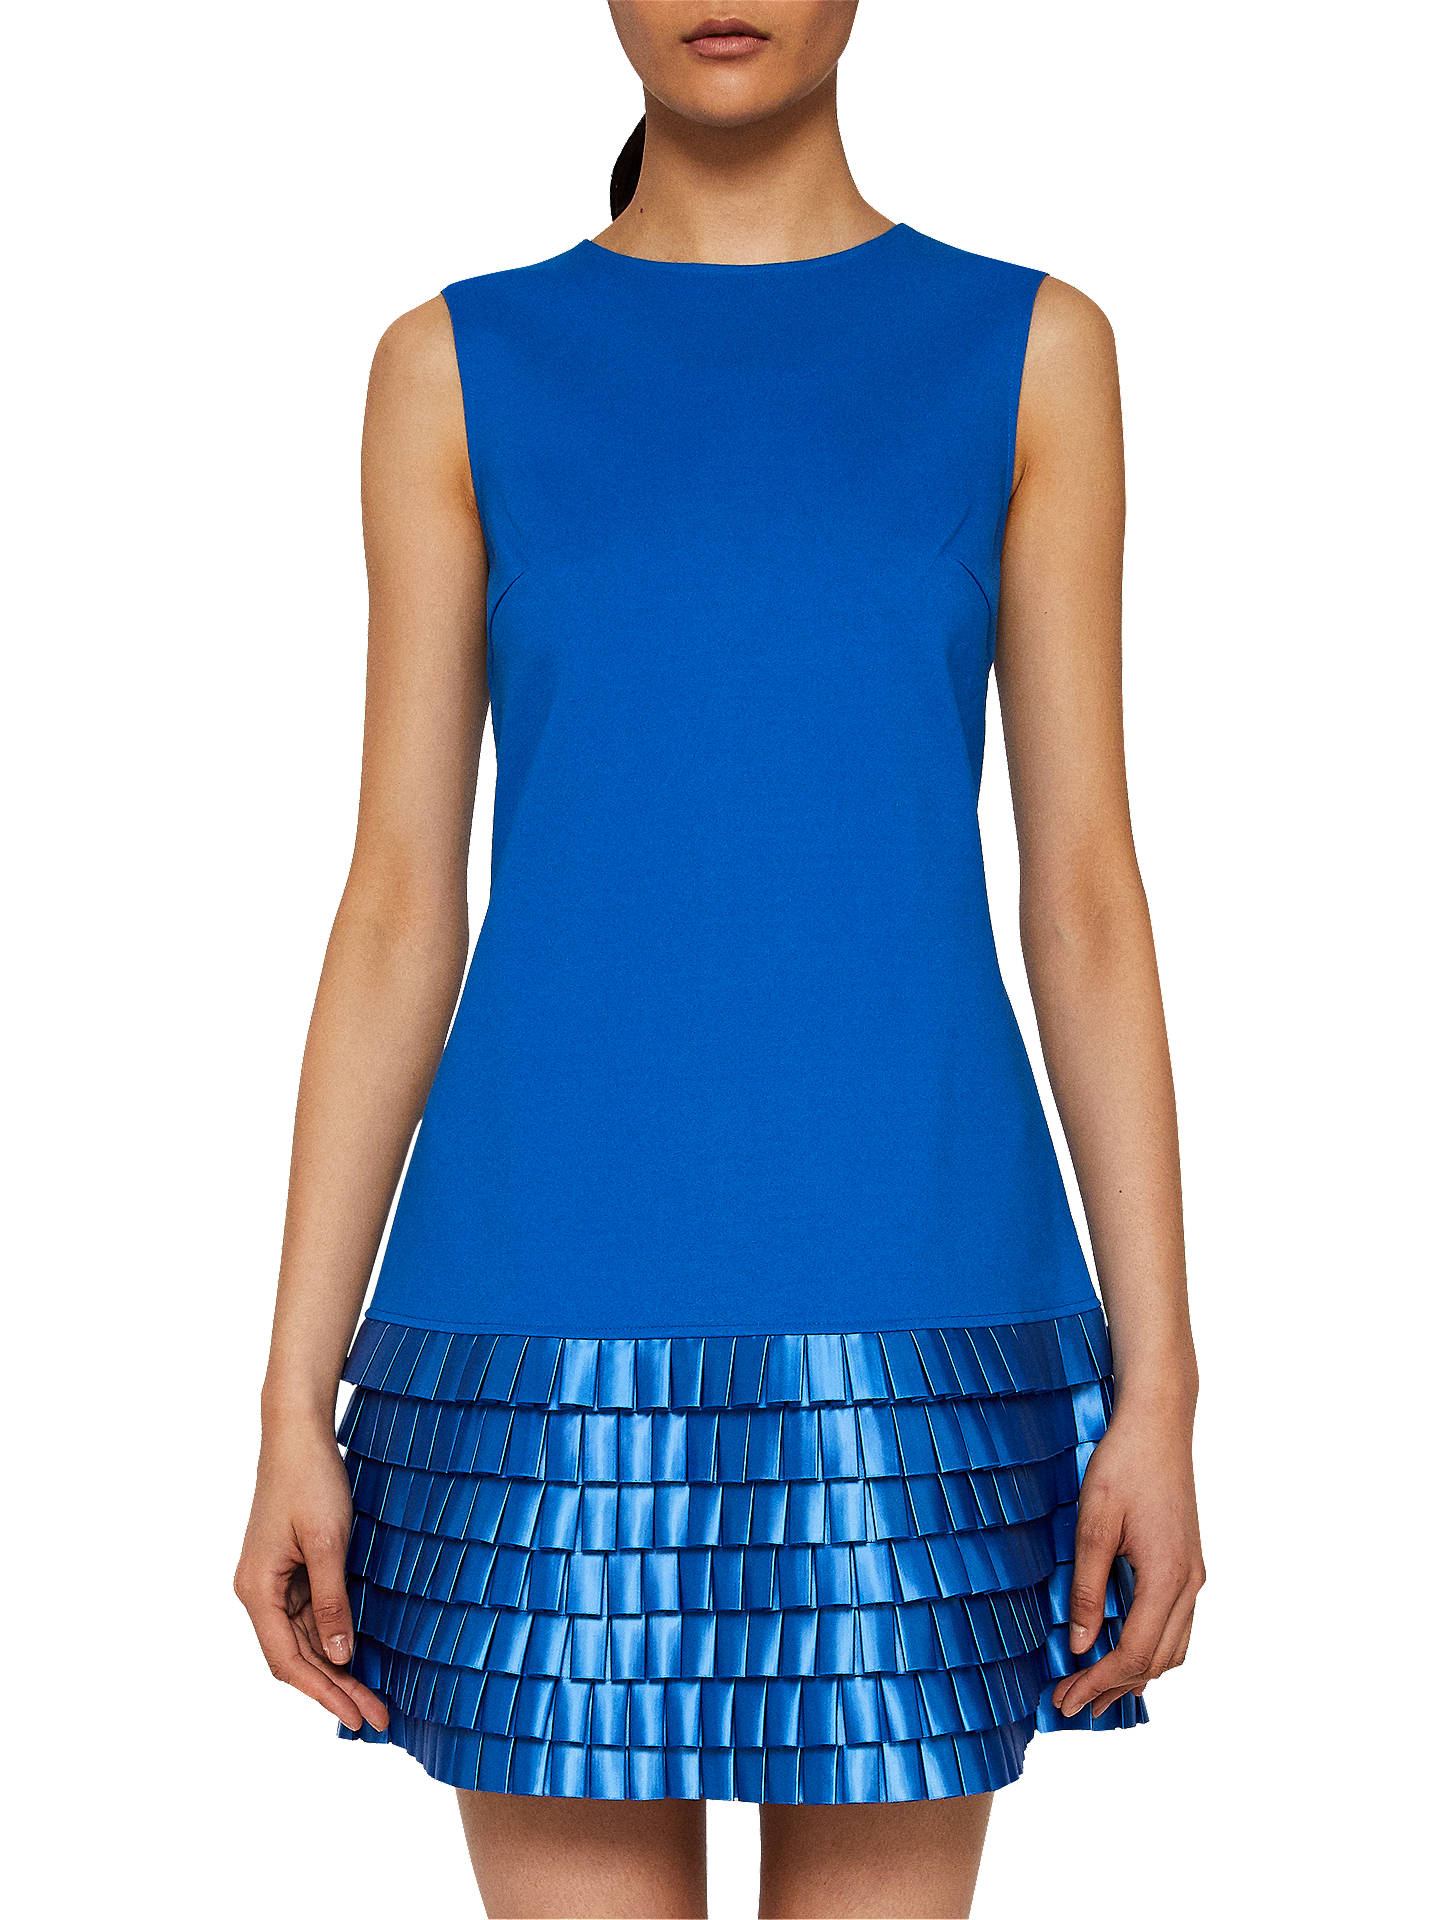 BuyTed Baker Satin Loop Shift Dress, Bright Blue, 6 Online at johnlewis.com